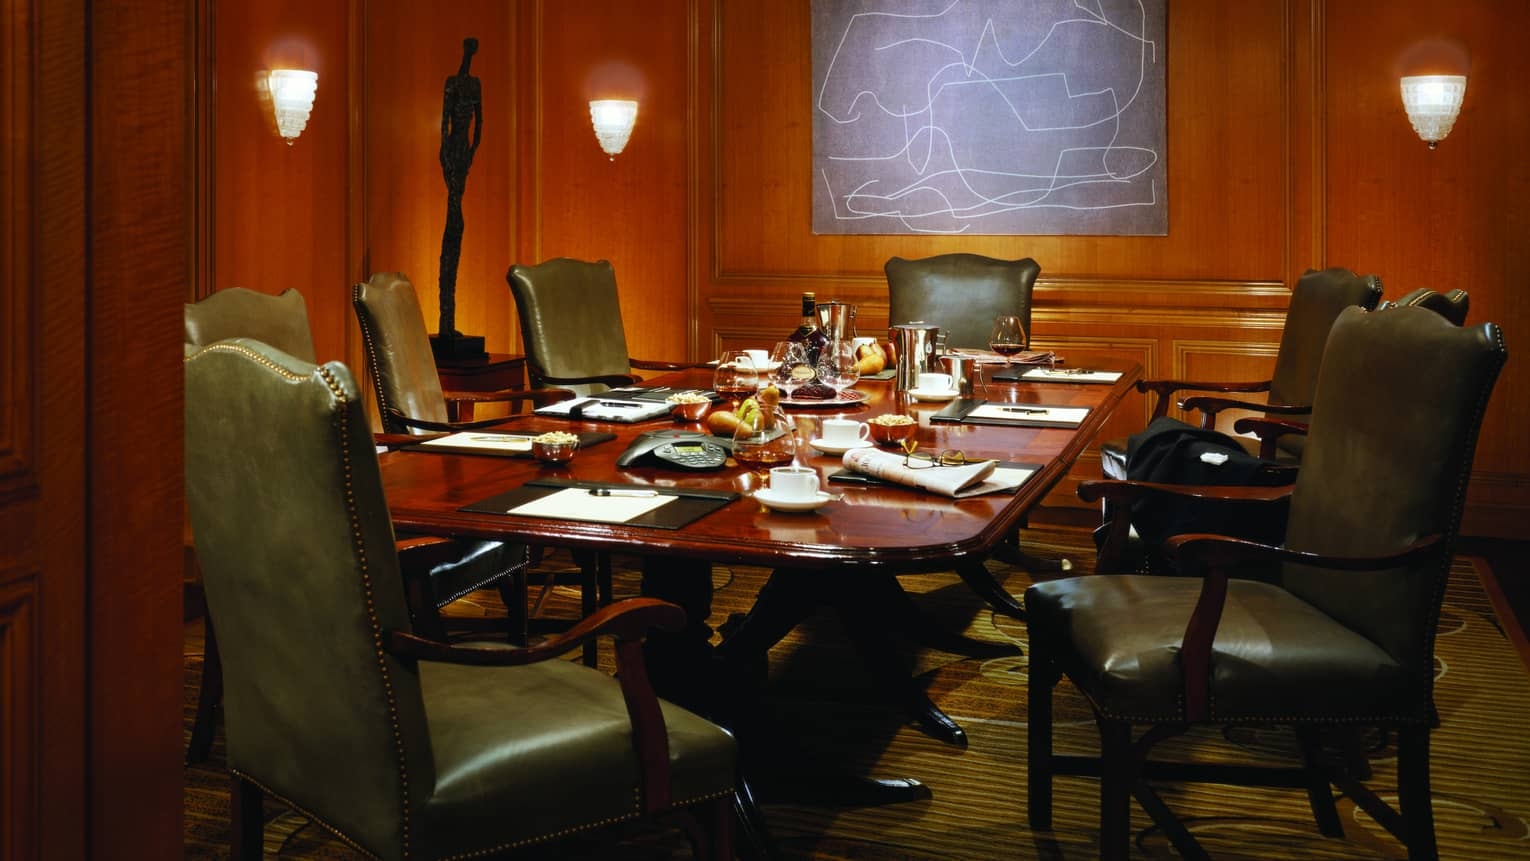 Large boardroom meeting table in room with wood panel walls